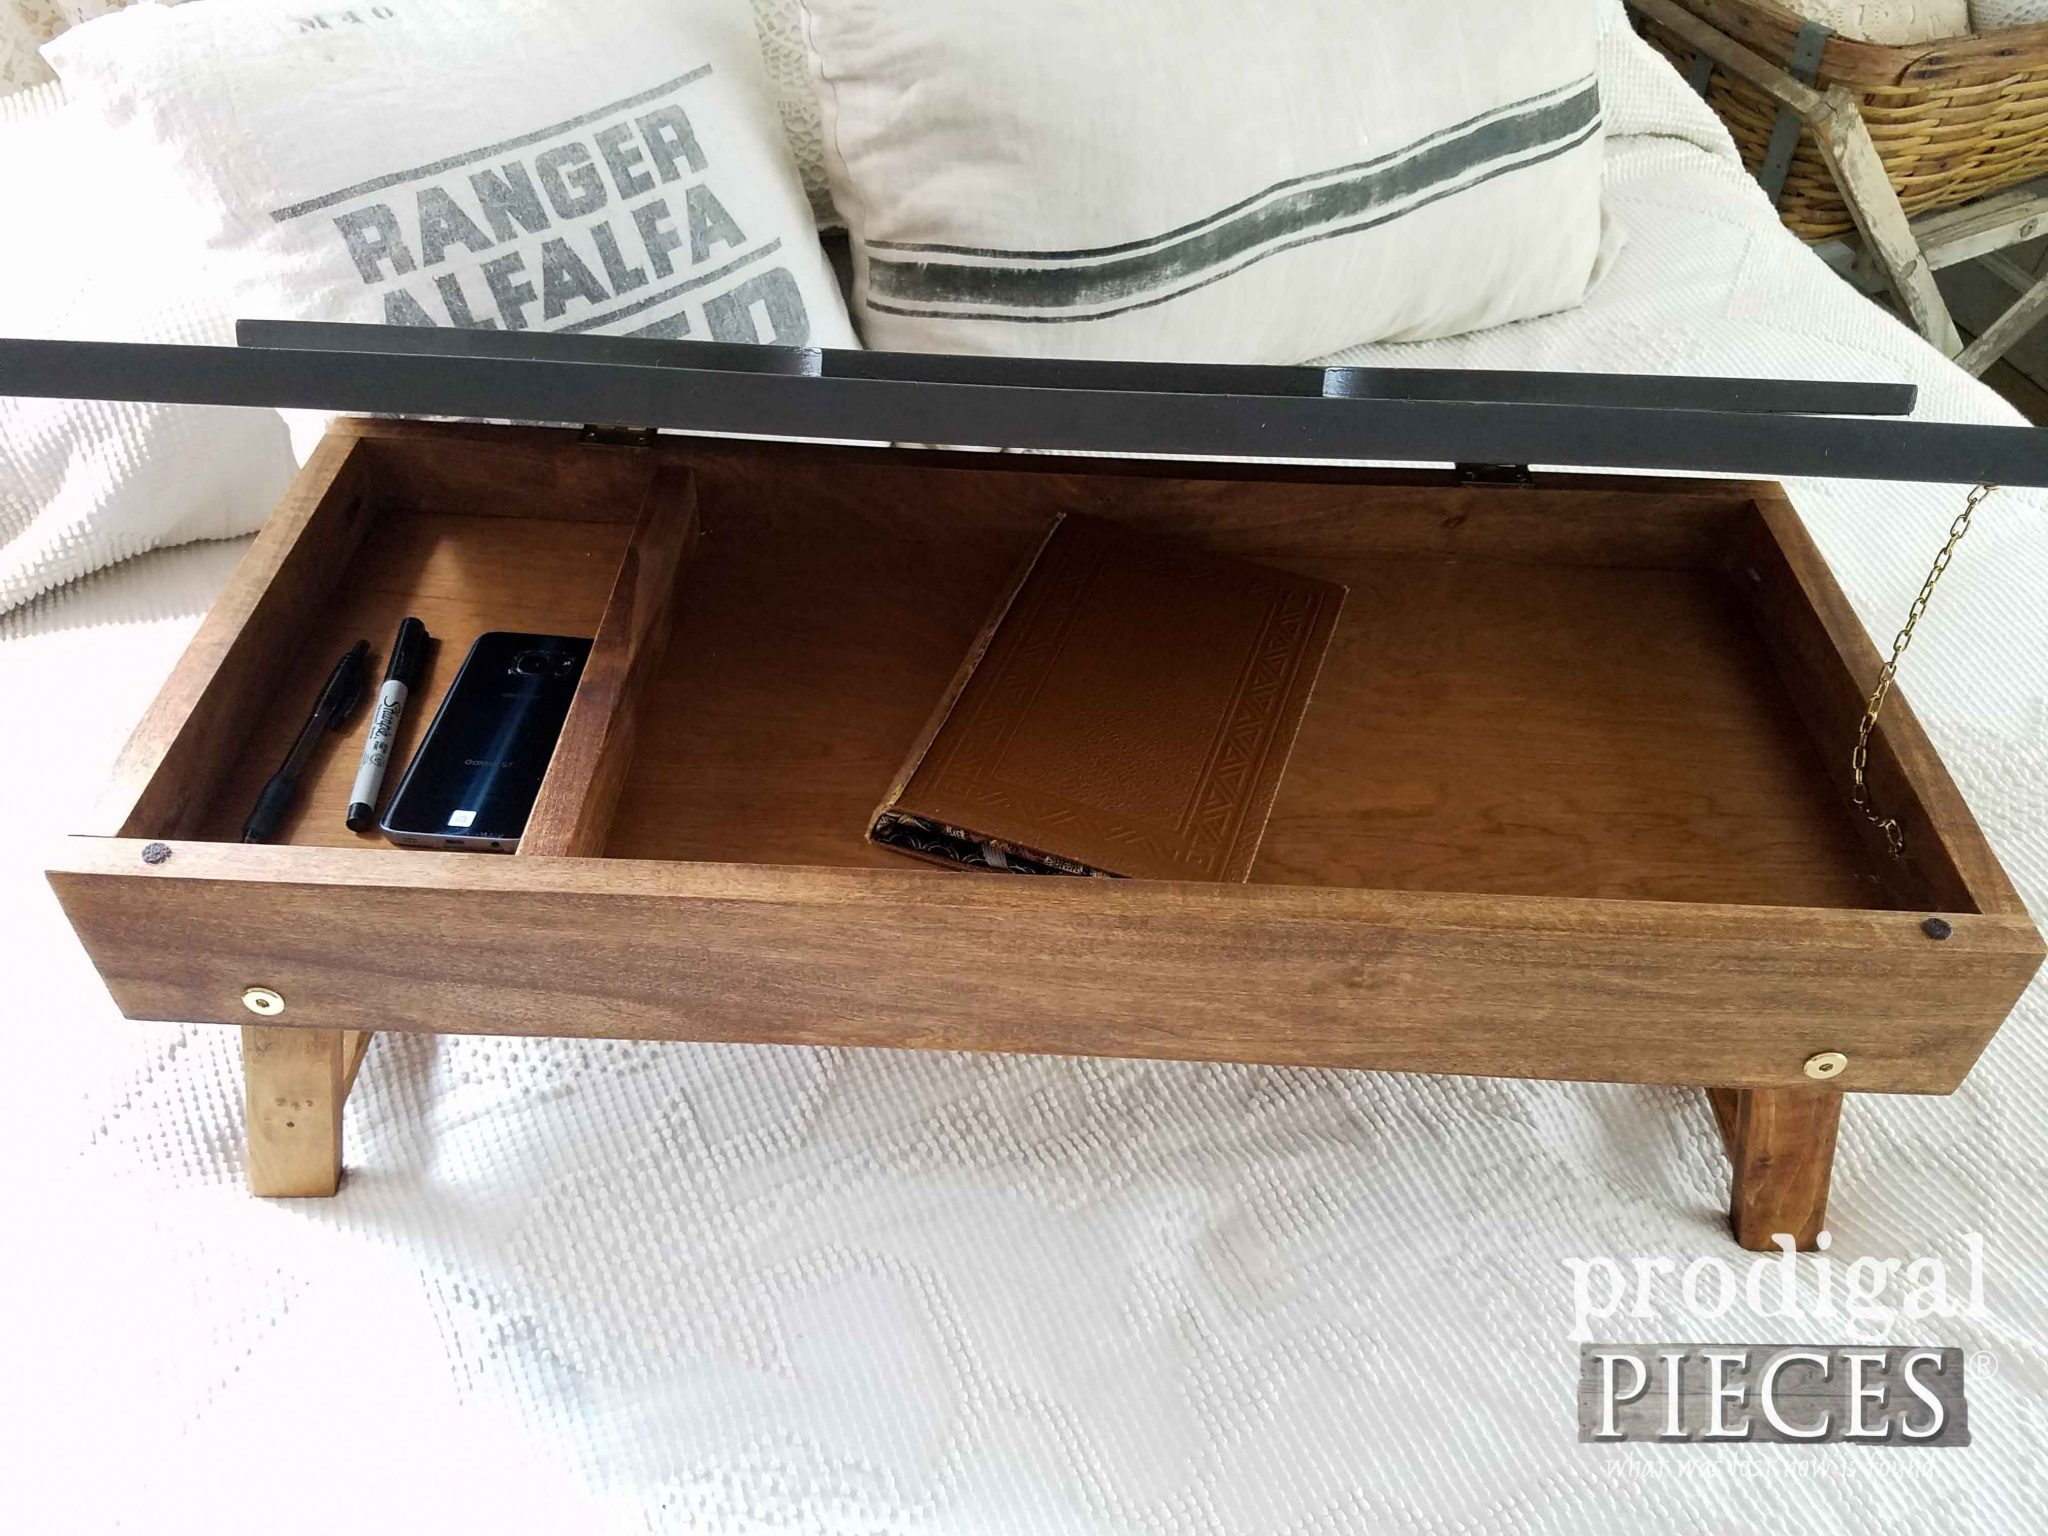 Inside DIY Folding Lap Desk from Upcycled Materials by Prodigal Pieces | prodigalpieces.com